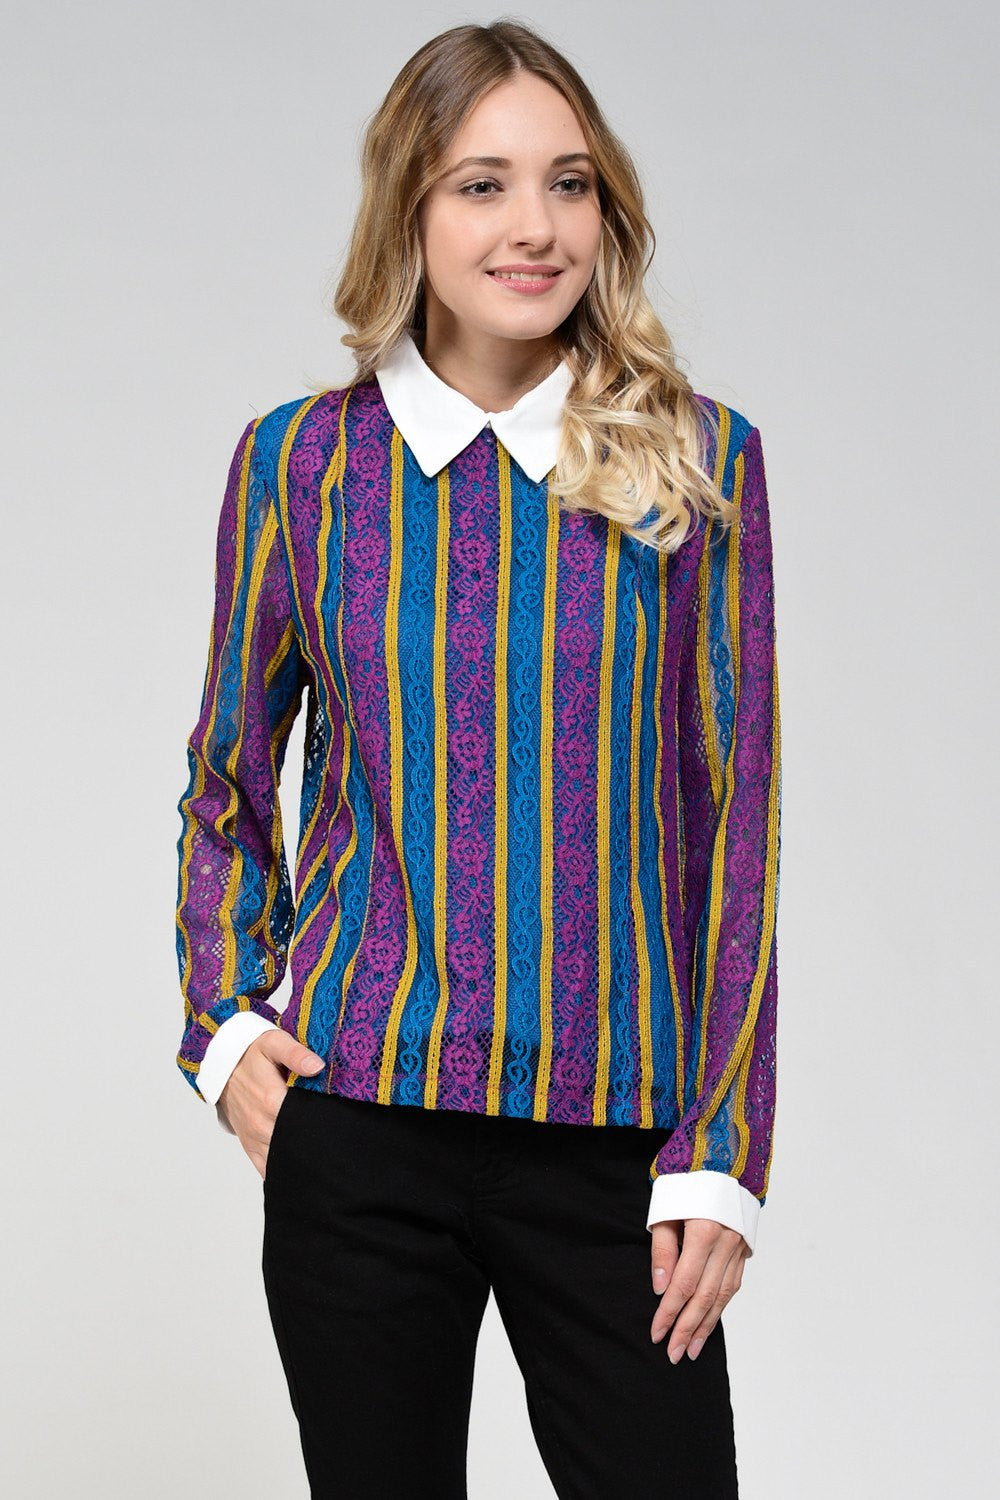 Radlands Oyster Blouse by Sister Jane